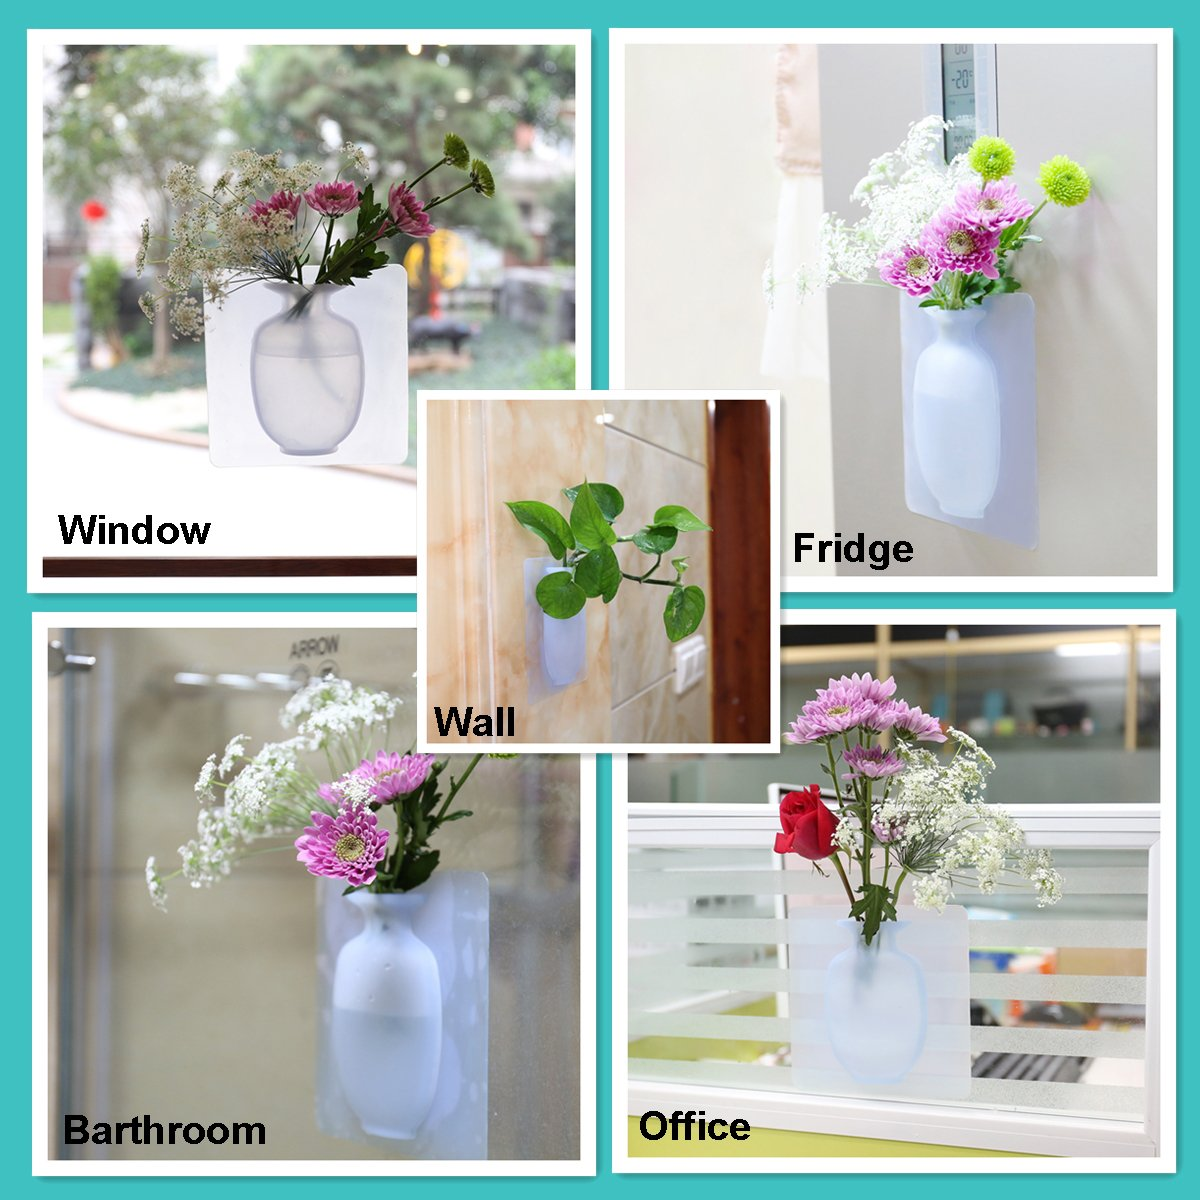 Coolnice Wall Vase Hanging Flower Container with Strong Sticky - Food Grade Silicond - Great for Indoor Outdoor Decoration